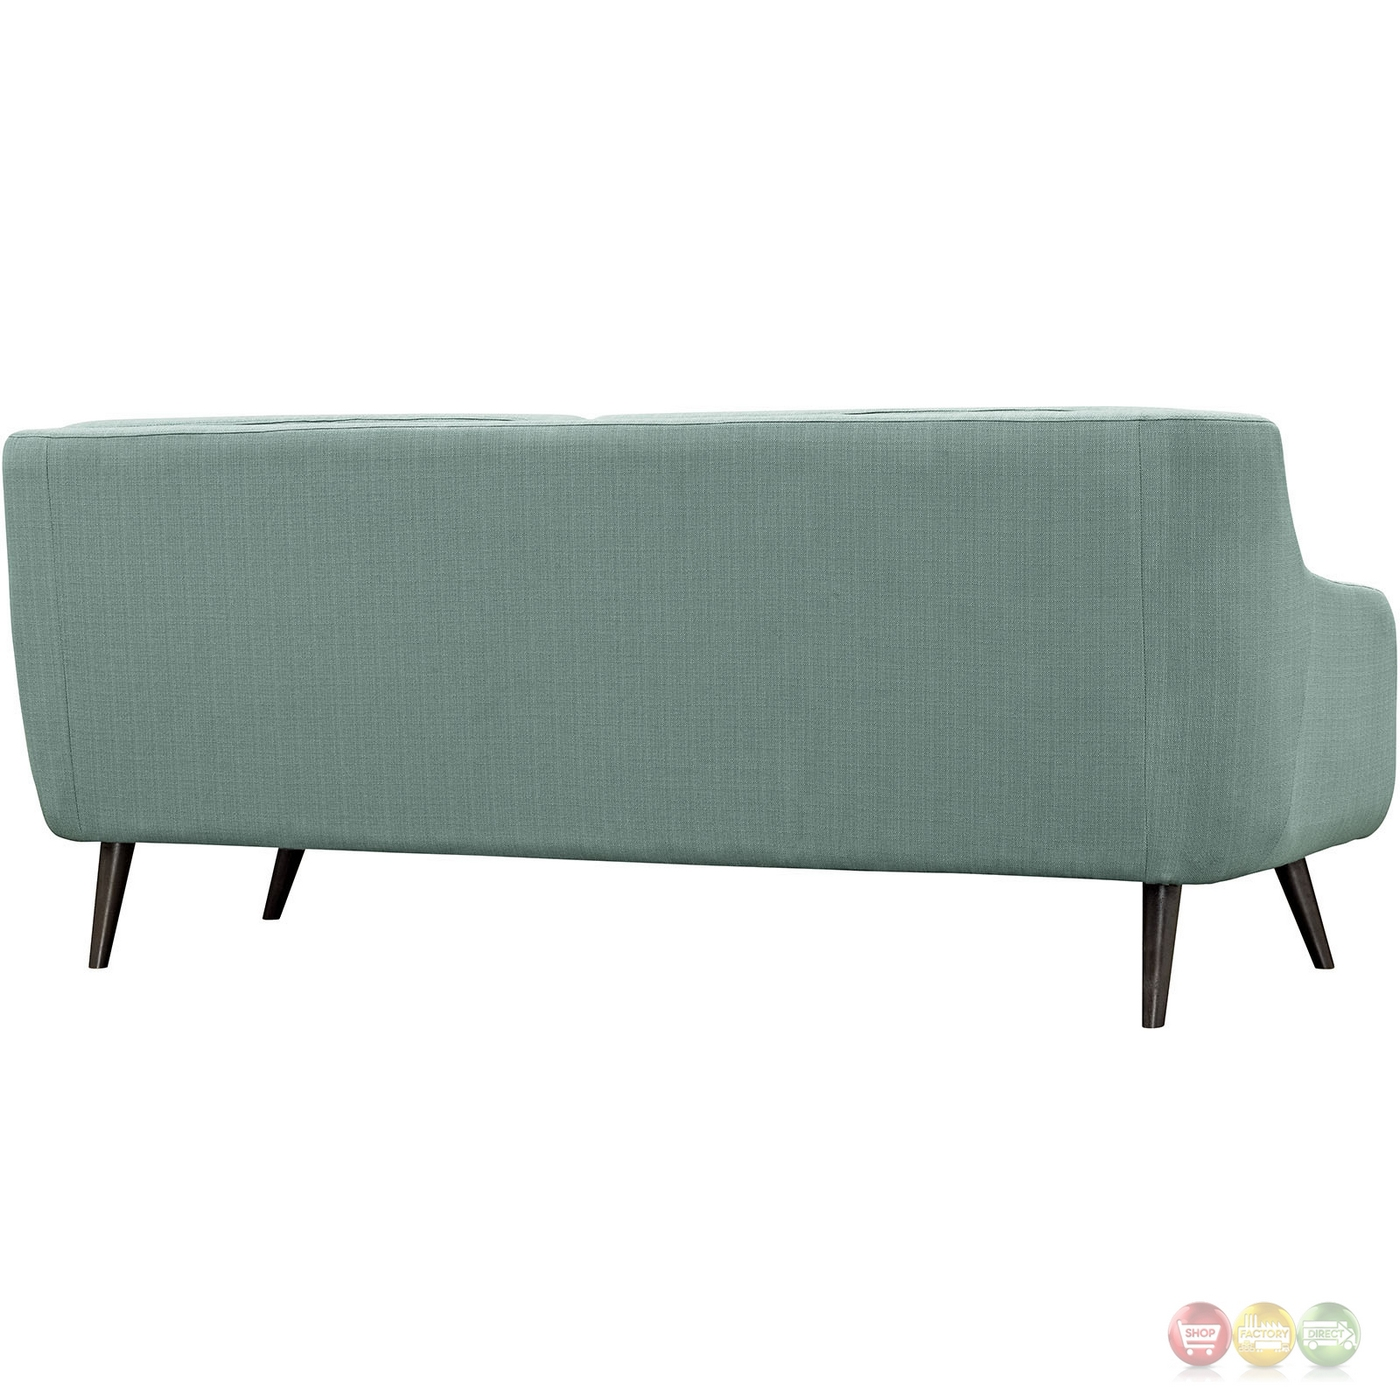 Mid-Century Modern Verve Upholstered Sofa With Wood Frame